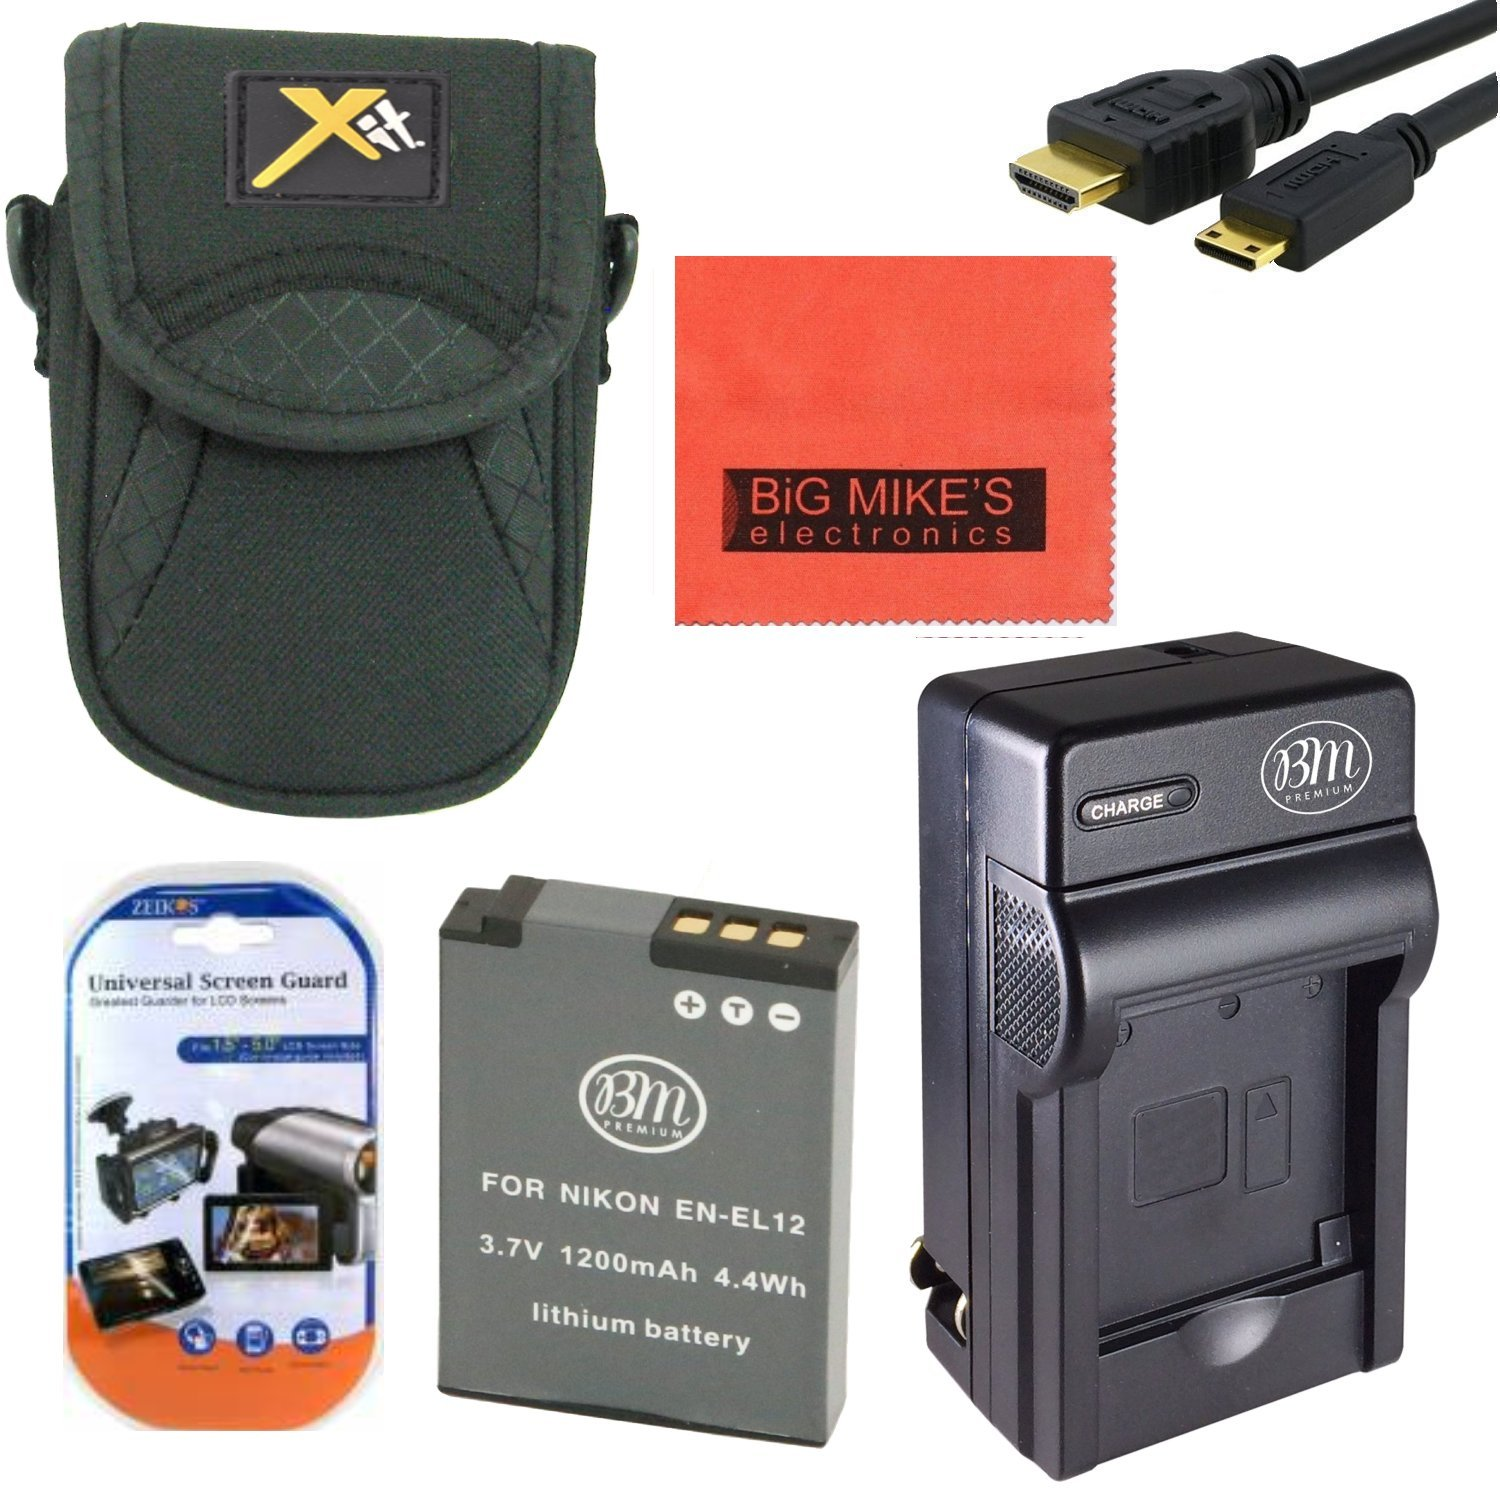 Starter Accessory Kit for Nikon Coolpix A900, AW120, P340, S9500, S9700 Digital Camera - Includes ENEL12 Battery & Charger + Deluxe Carrying Case + Micro HDMI + More!! Big Mike' s BM-ENEL12K3CA15HDMI